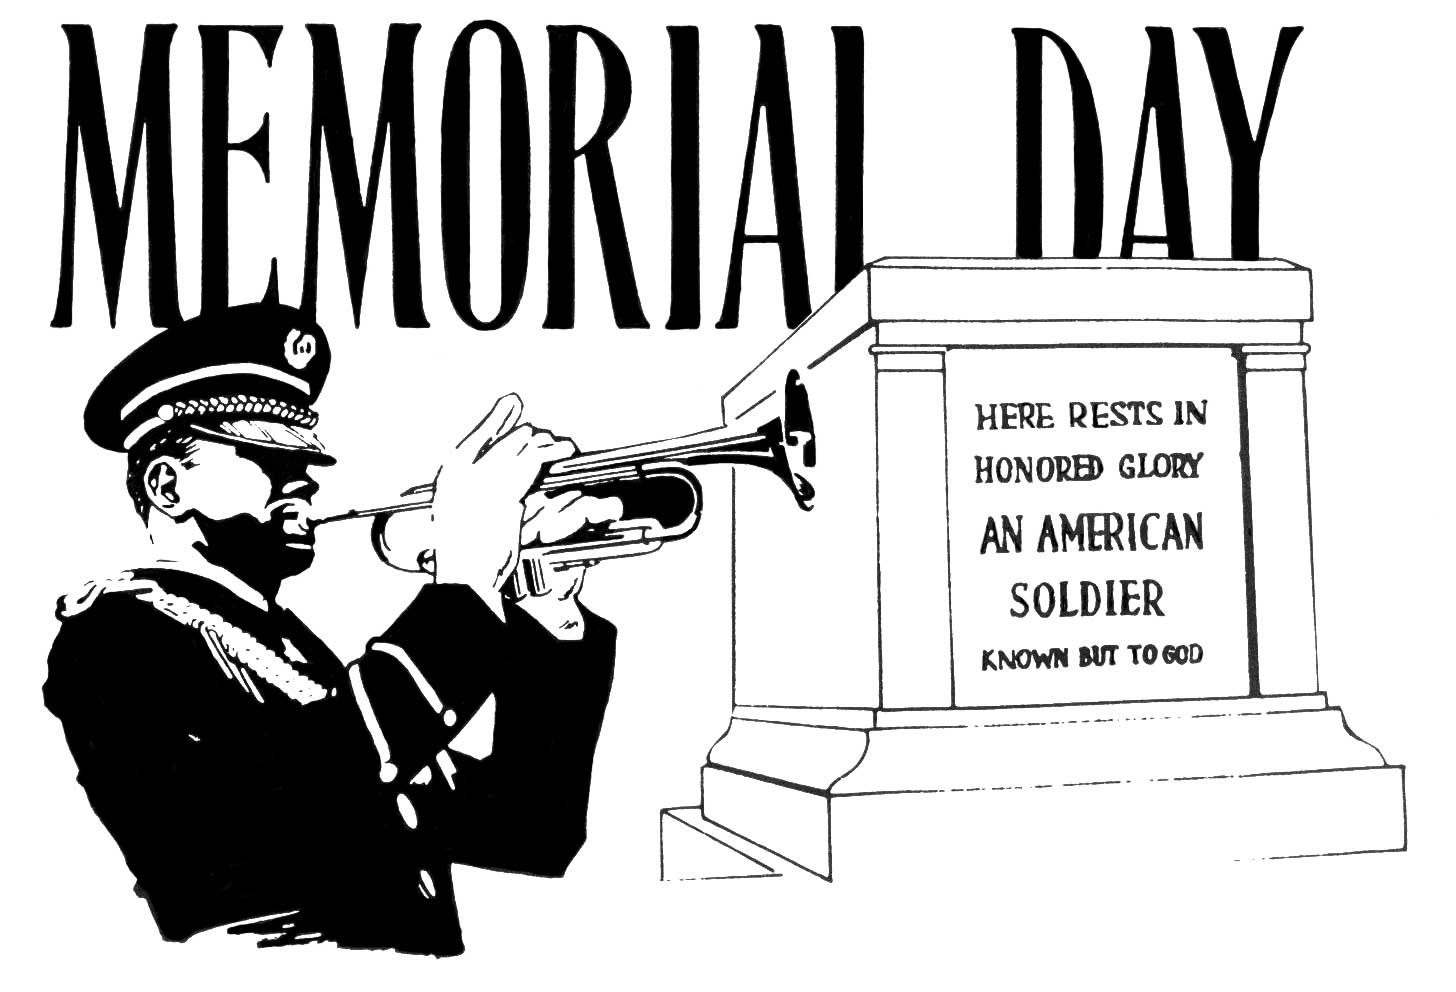 Memorial Day Honored